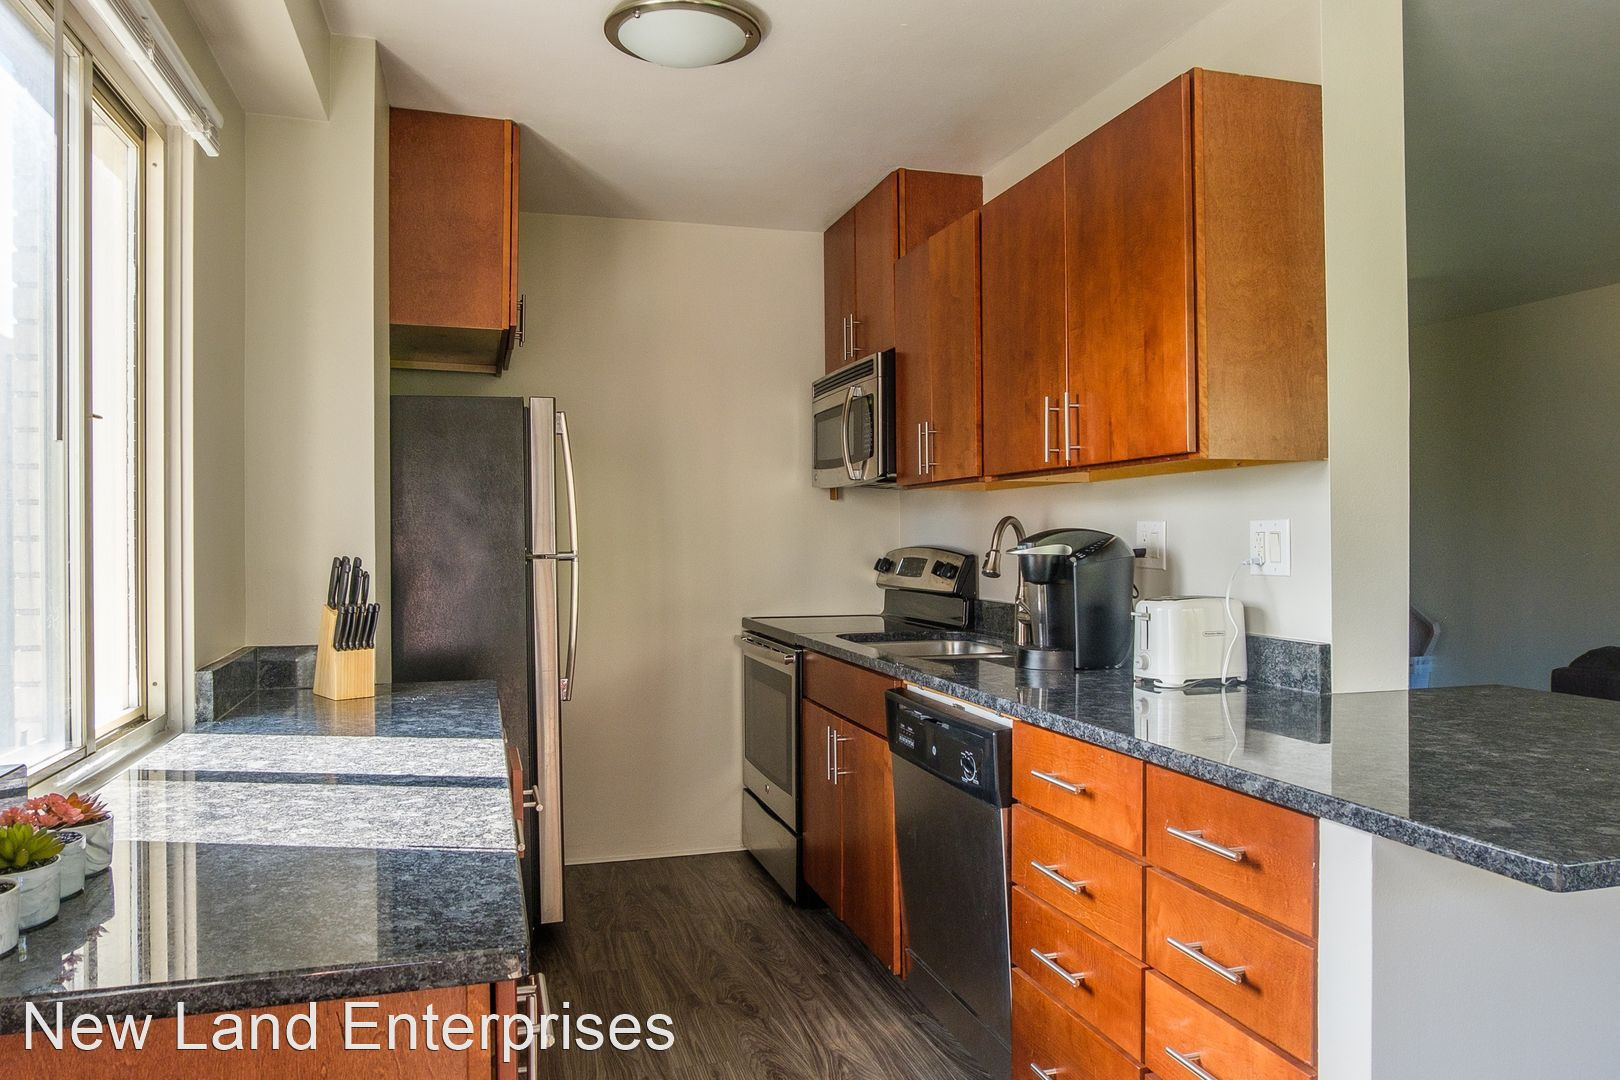 Apartments Near Bryant & Stratton Coronet for Bryant & Stratton College Students in Milwaukee, WI